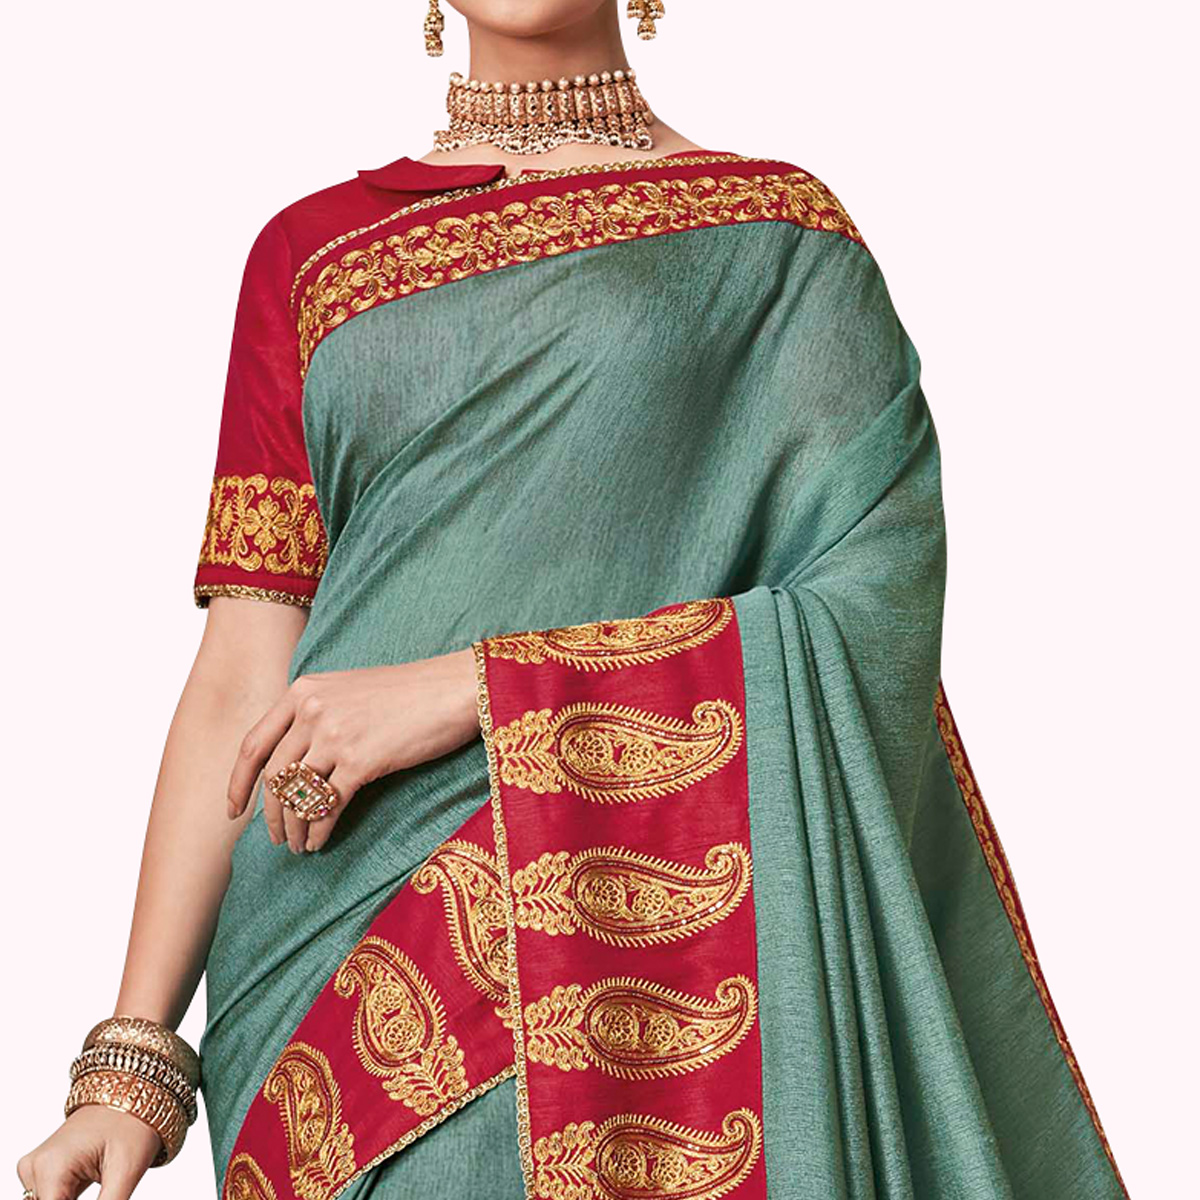 Hypnotic Teal Gray Colored Partywear Embroidered Raw Silk Saree